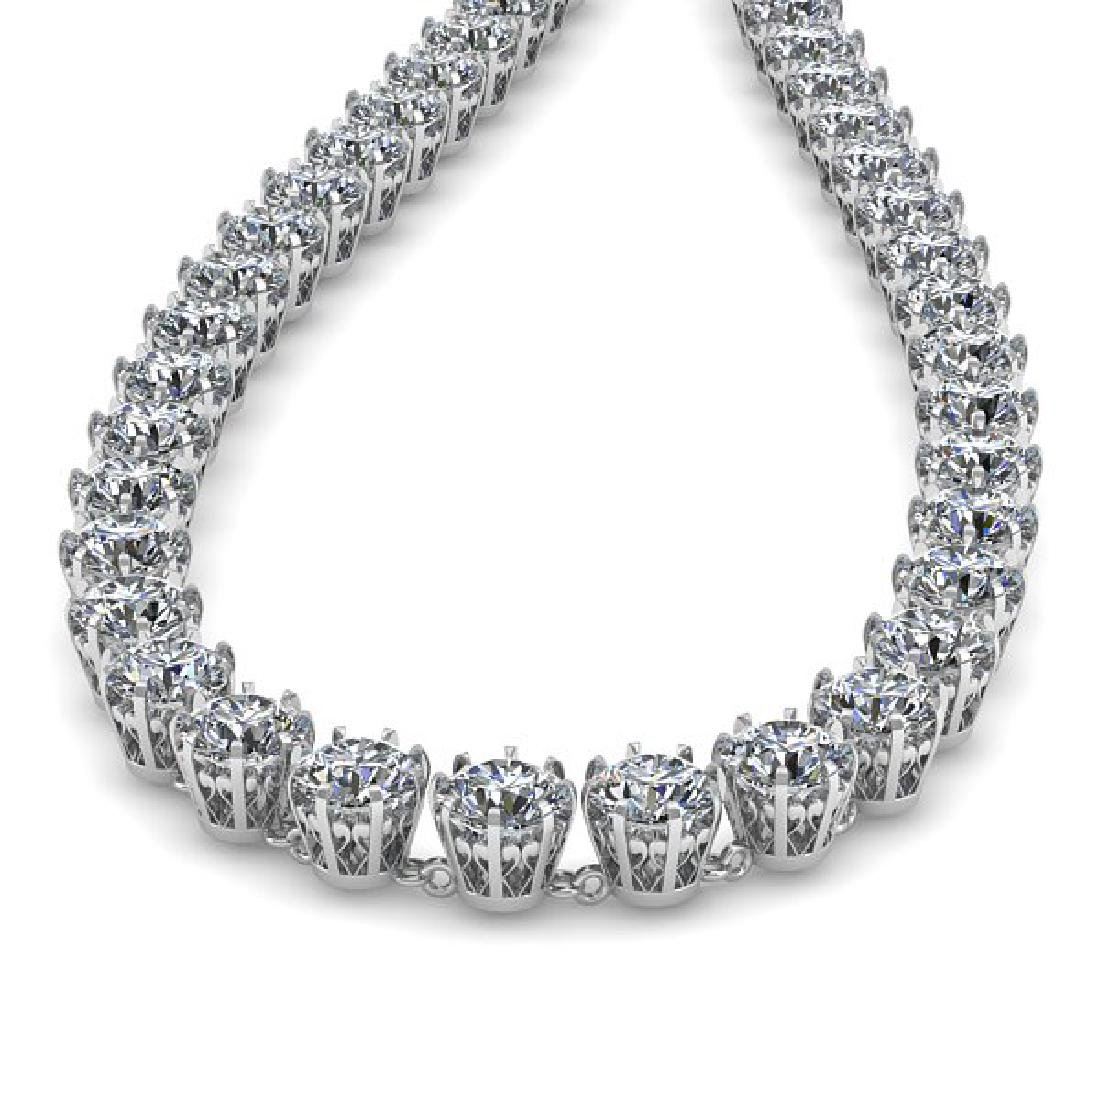 30 CTW SI Certified Diamond Necklace 14K White Gold